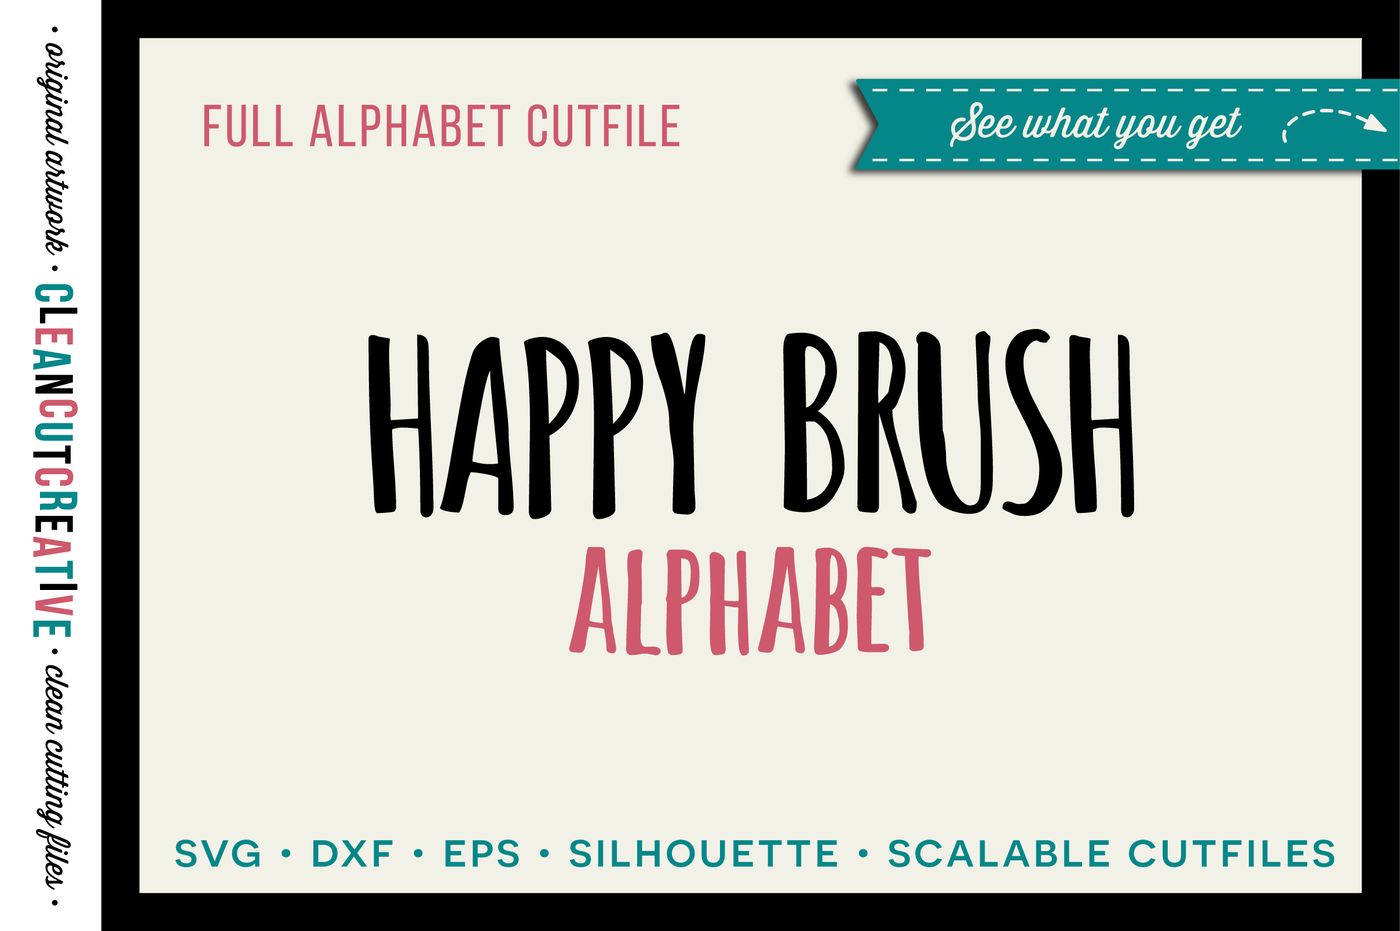 Full Alphabet Svg Cutfile And Clipart Cute Cricut Letter Shapes